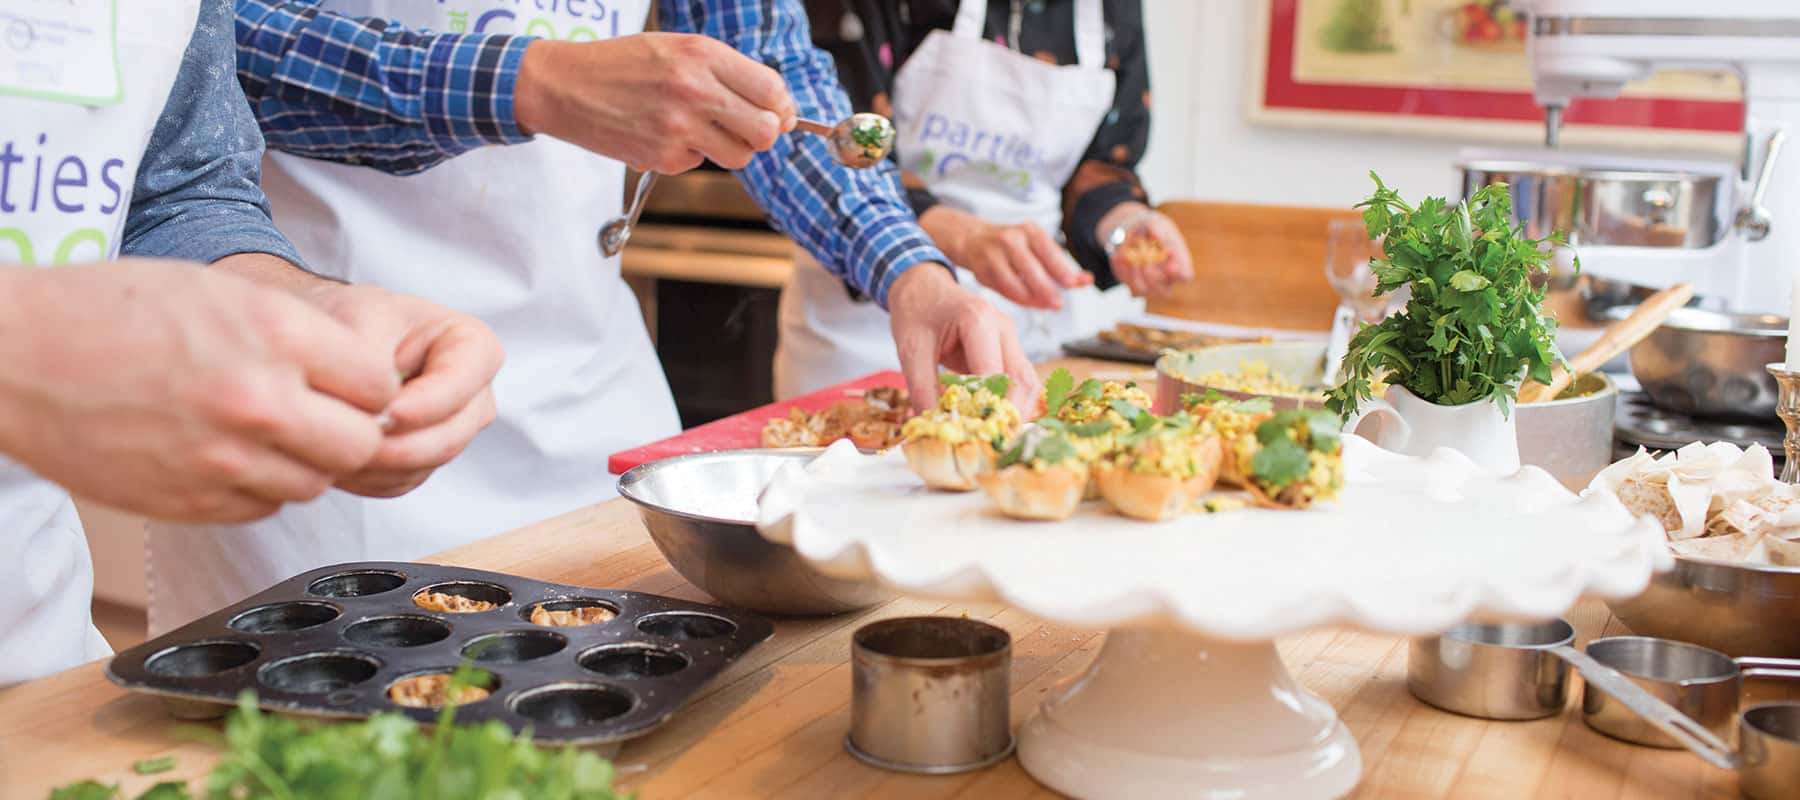 Corporate Team Building Cooking Events Parties San Francisco And Chicago